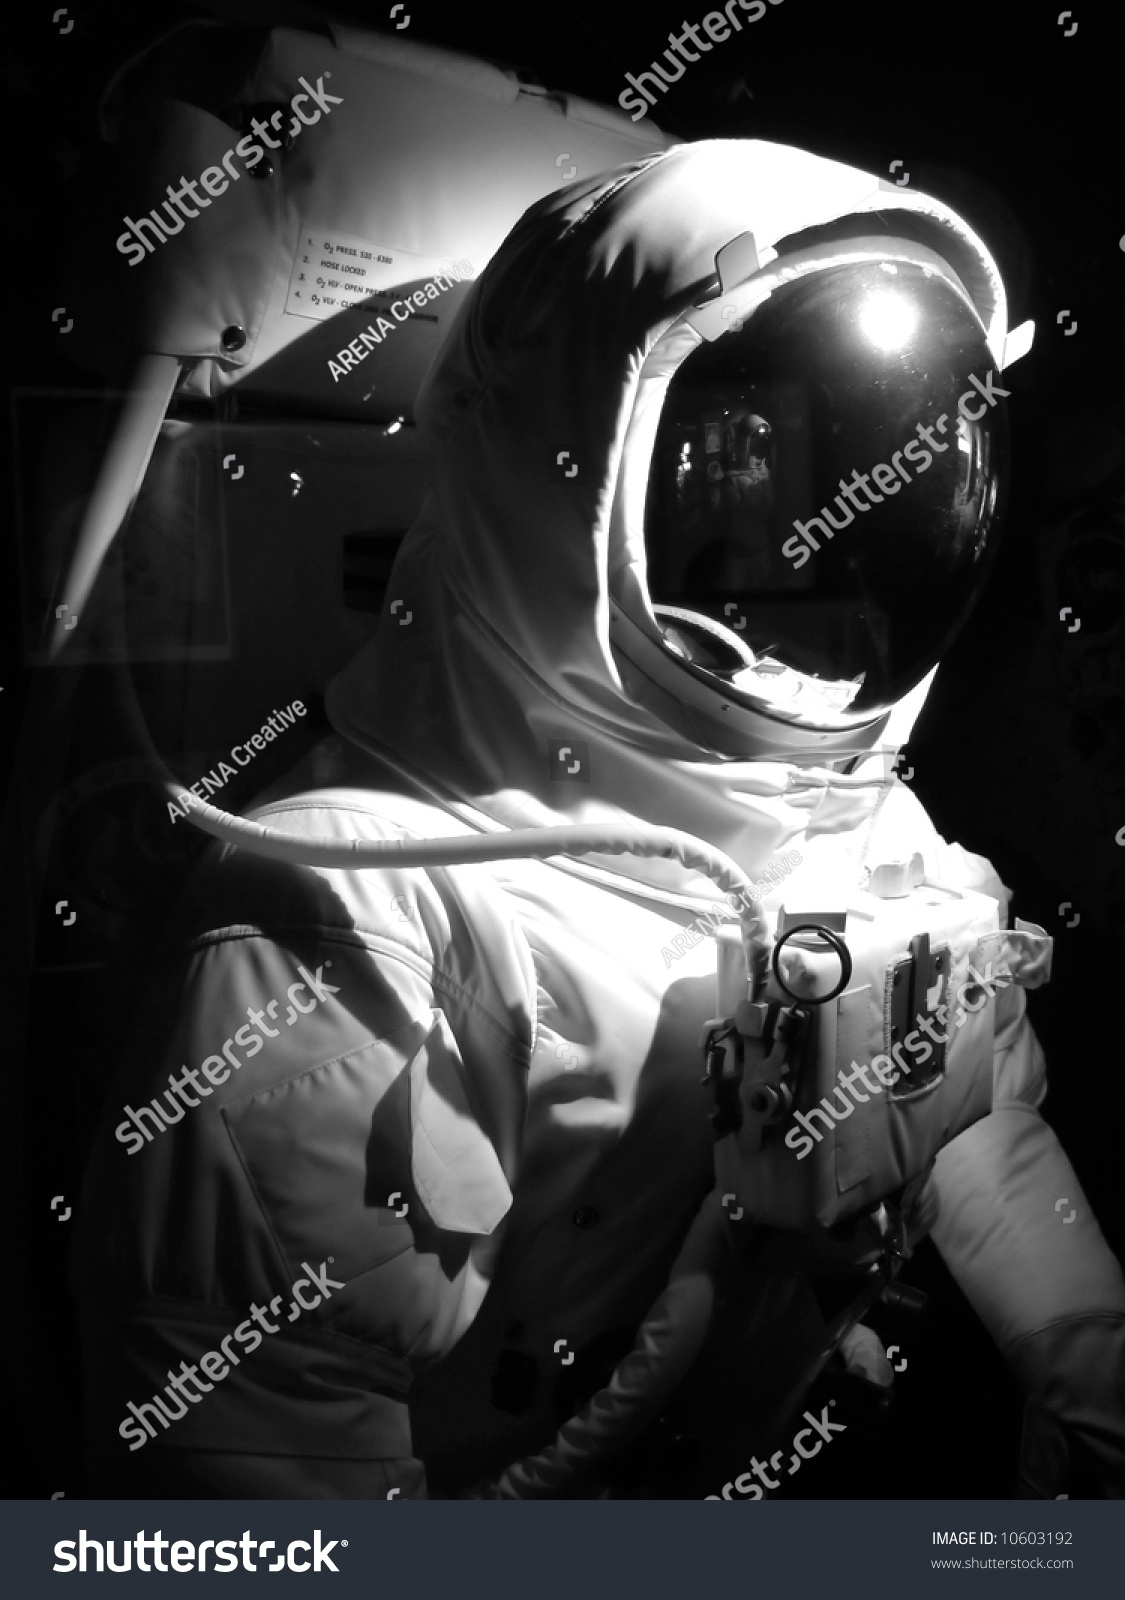 A complete astronaut setup under dramatic lighting. Black and white. & Complete Astronaut Setup Under Dramatic Lighting Stock Photo ... azcodes.com